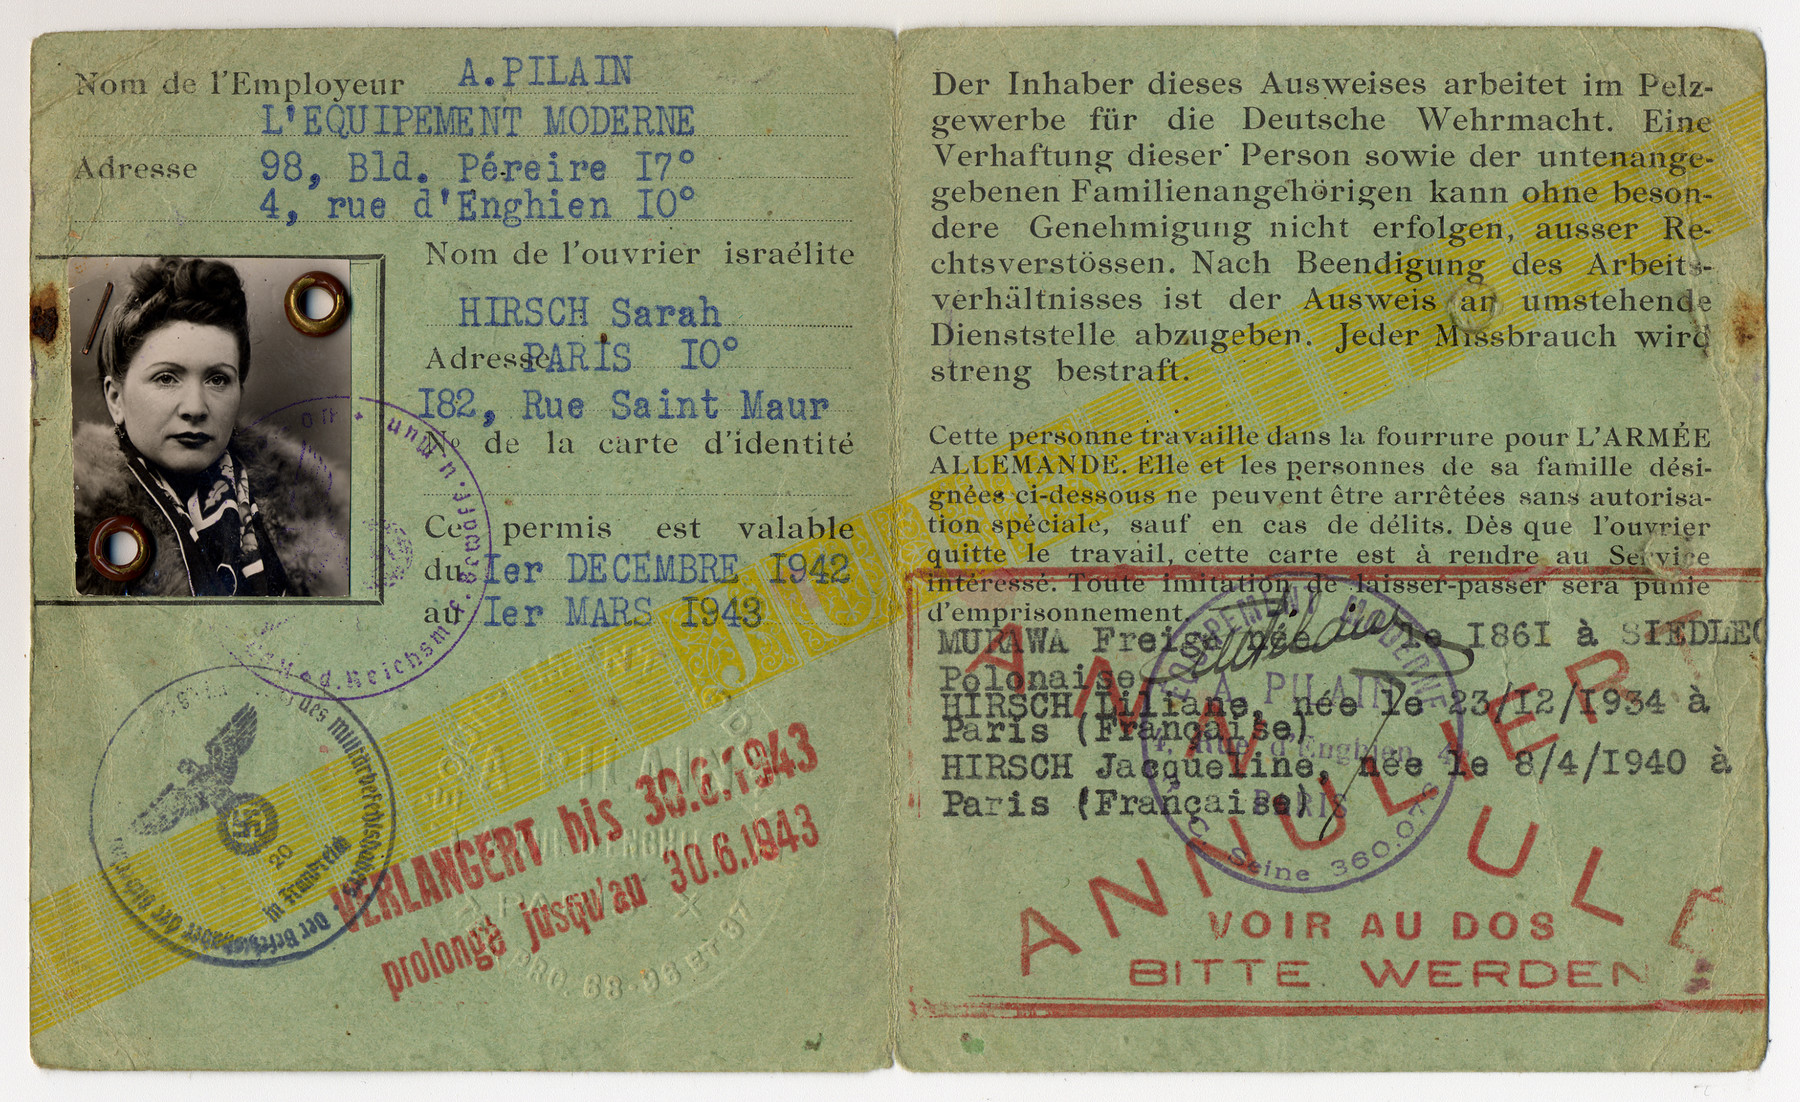 "Identification card and laisser-passer paper belonging to Nety Hirsch which allowed her to continue living and working in Paris because it benefited the Nazis.    The papers, which were initially valid between December 1942 and March 1943, were extended until until March 31, 1944 at which point the Hirsch family went into hiding.    The text of the Laisser-Passer reads:  ""Der inhaber dieses Ausweises arbeited im Pelzgewerbe fuer die Deutsche Wehrmacht.  Eine Verhaftung dieser Person sowie der untenangegebenen Familienangehoerigen kann ohne besondere Genehmigung nicht erfolgen, ausser Rechstverstoessen.  Nach Beendigung des Arbeitsverhaeltnisses ist der Ausweis an umstehende Dienststelle abzugeben.  Jeder Missbrauch wird steng bestraft.""  Translated:  ""The owner of this identification card works in the fur industry for the German army.  An arrest of this person or the below-specified family members cannot proceed without special approval, outside of a right violation.   After the end of the working relationship, the identification must be handed over to the surrounding agency.  Each abuse will be harshly punished."""